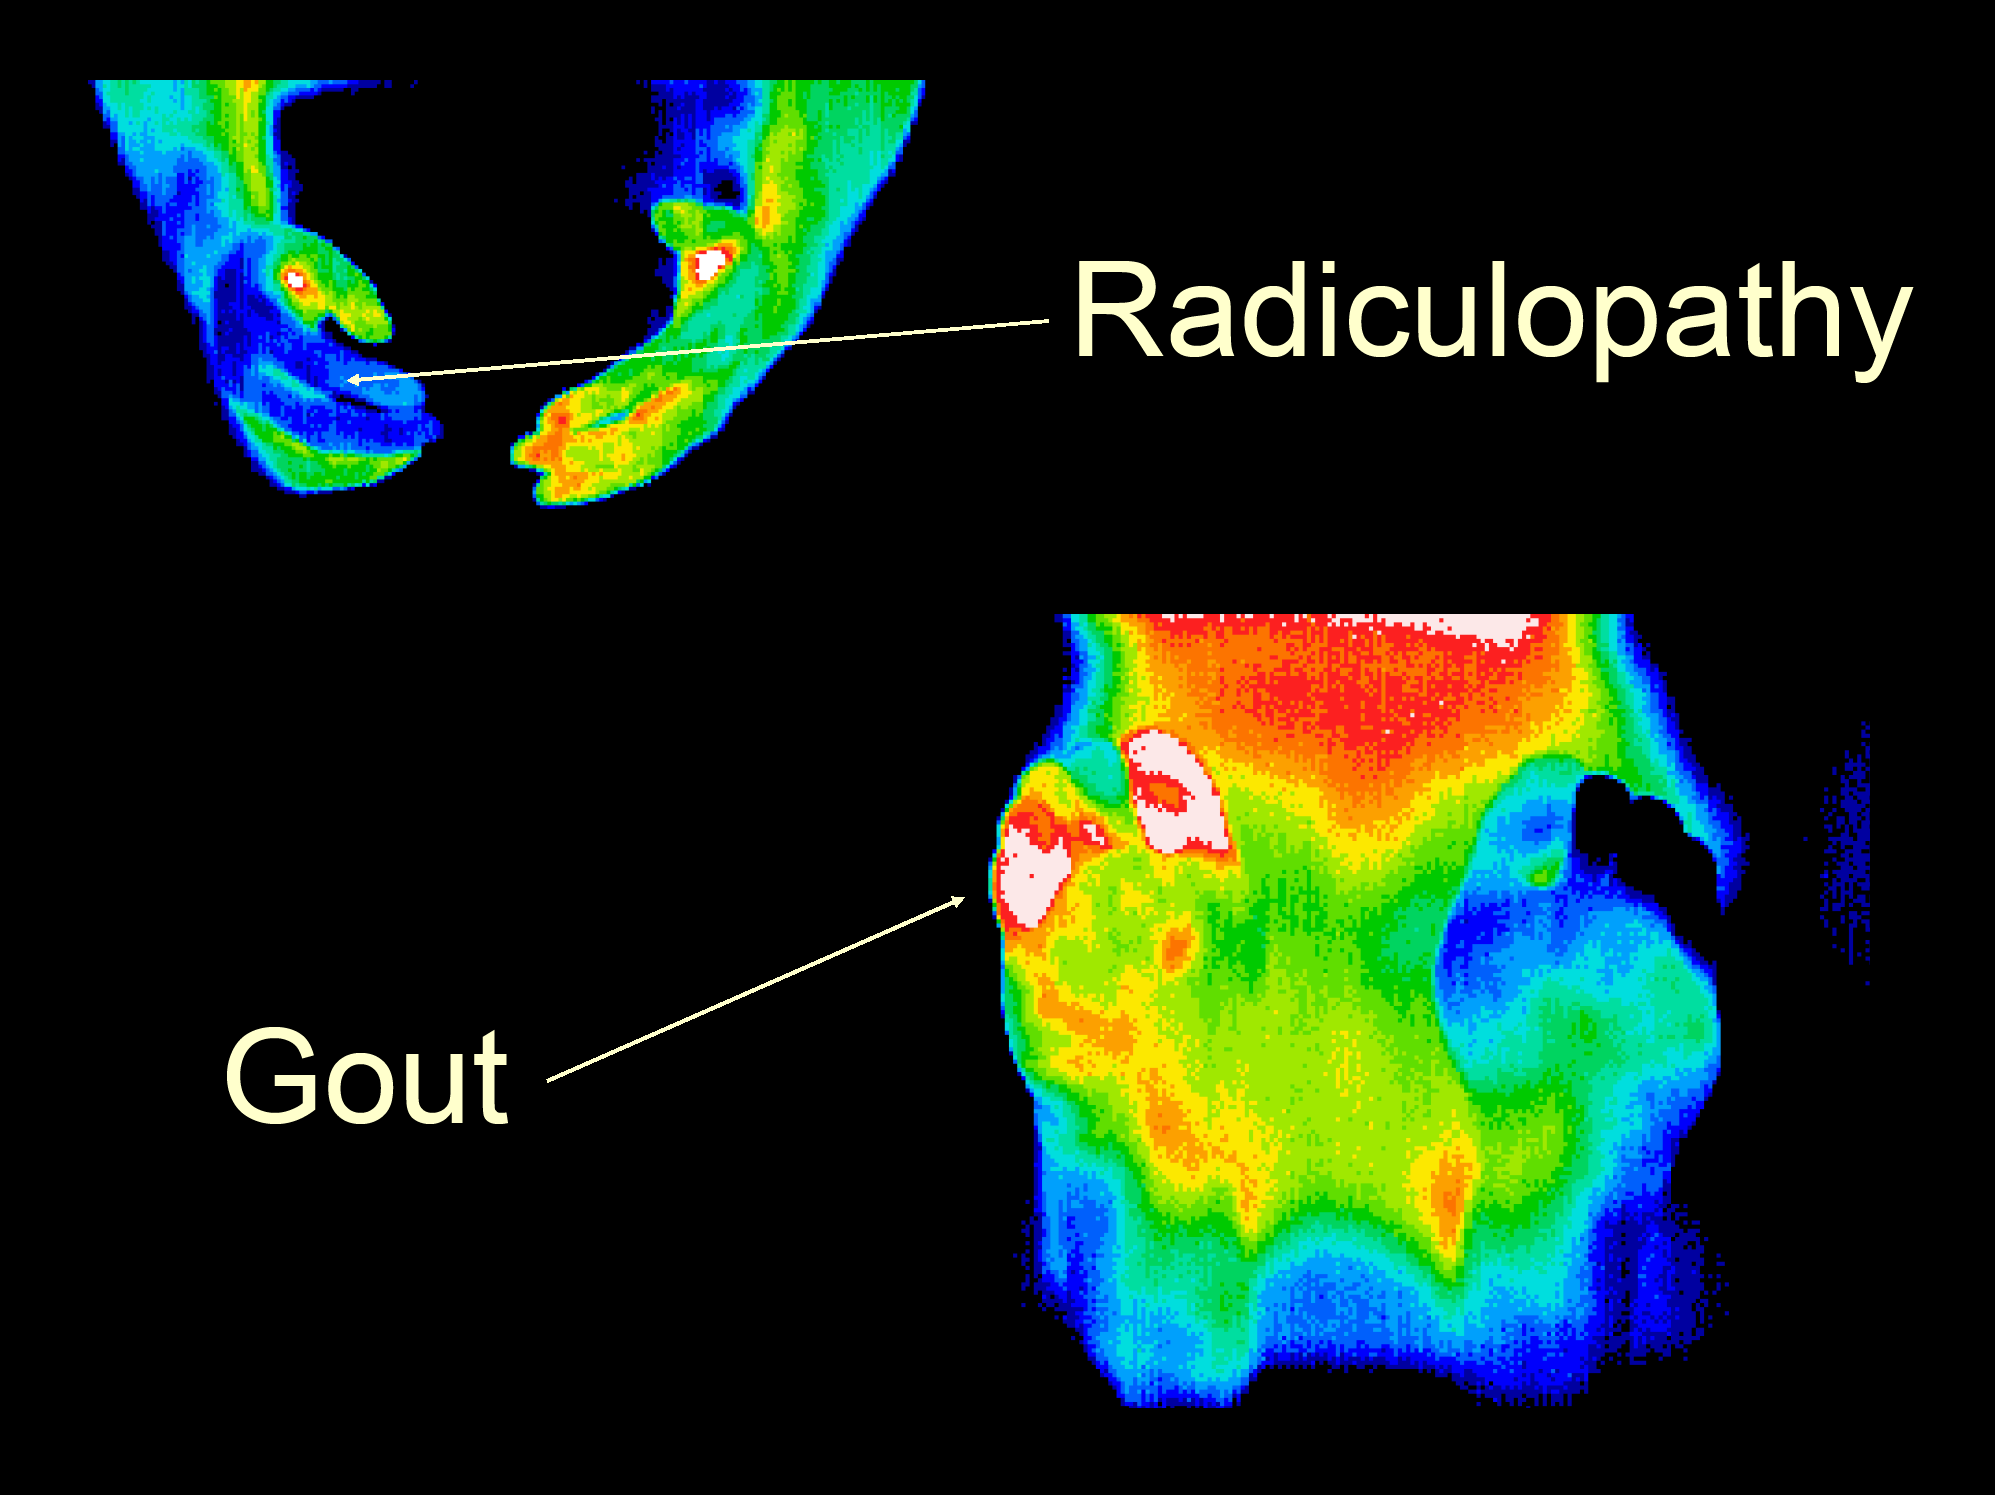 32 Gout, Radiculopathy